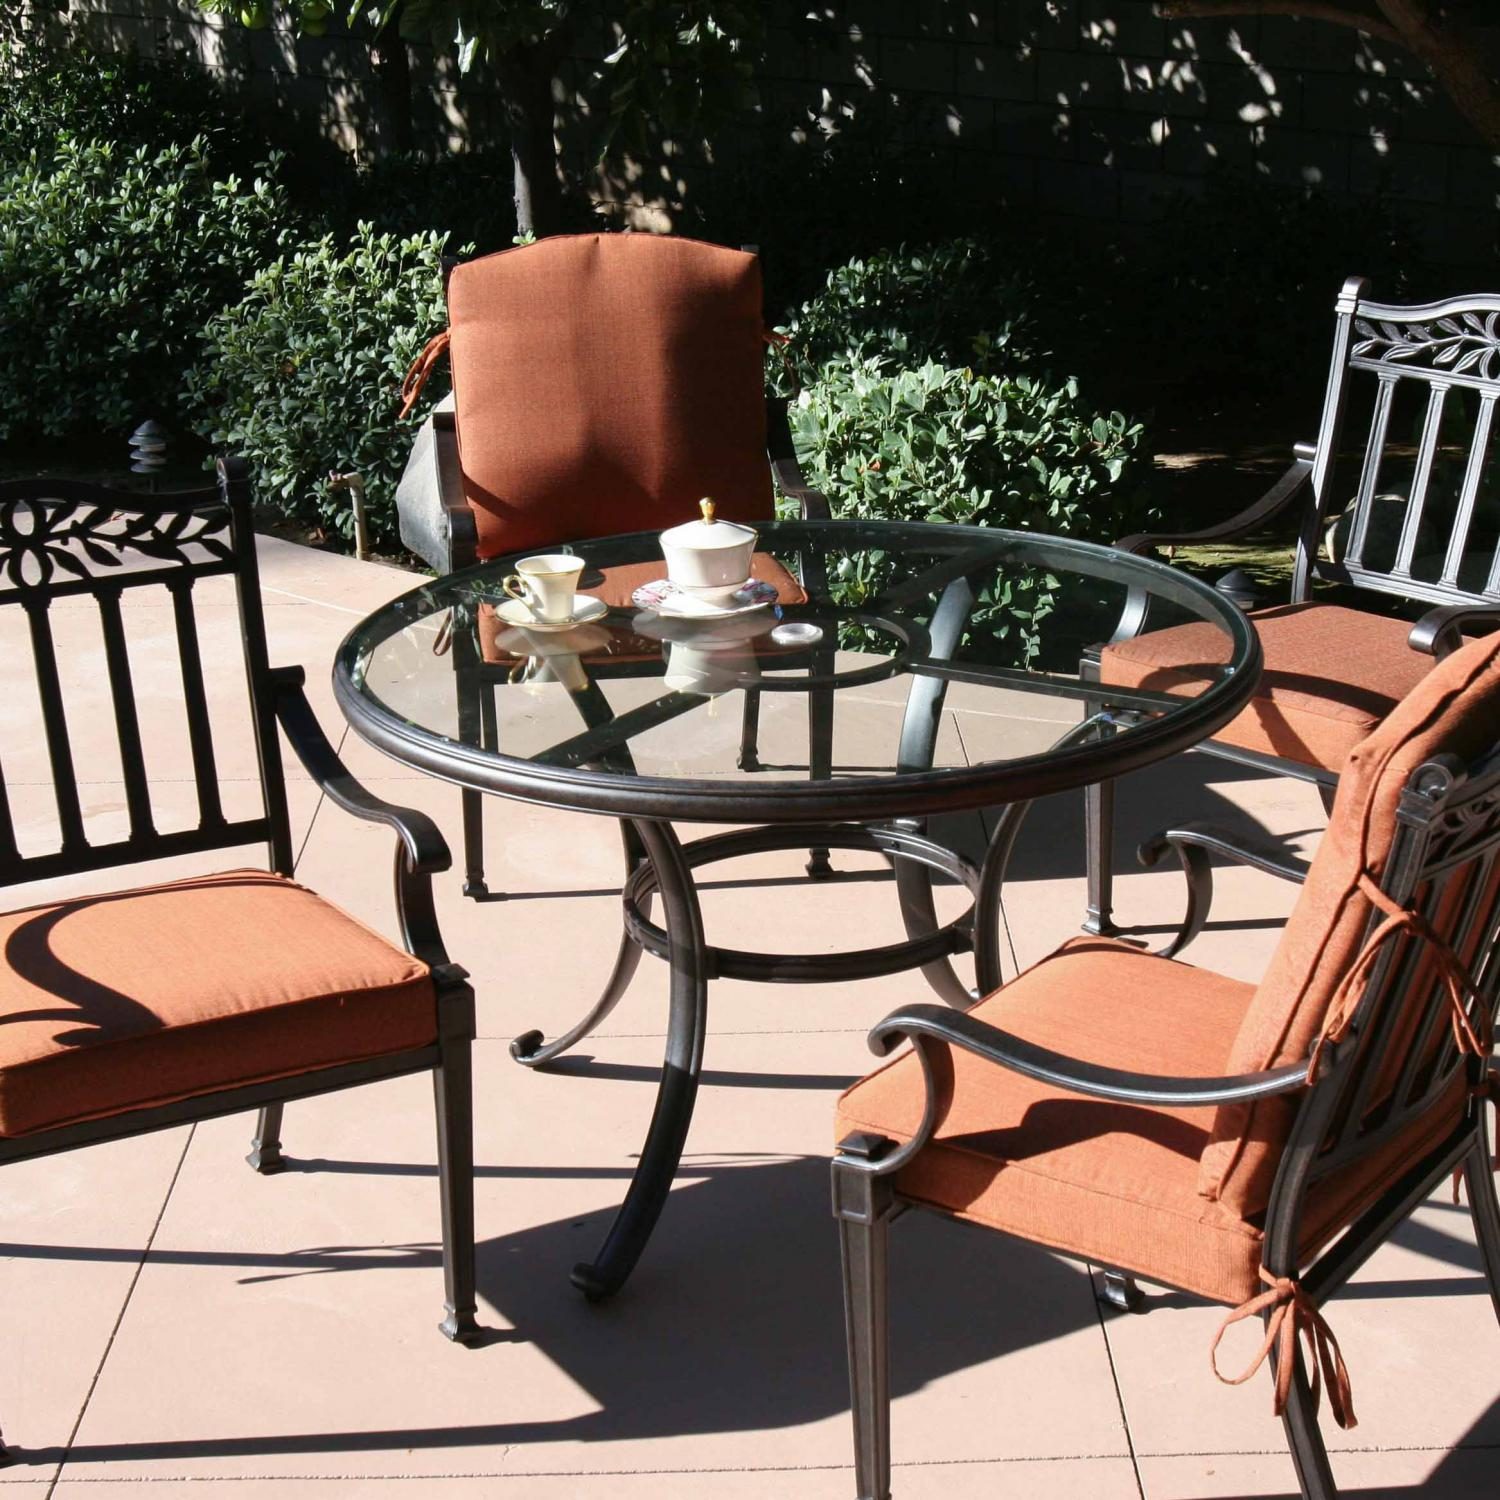 Terrific Darlee Charleston 5 Piece Cast Aluminum Patio Dining Set With Glass Top Table Interior Design Ideas Inesswwsoteloinfo